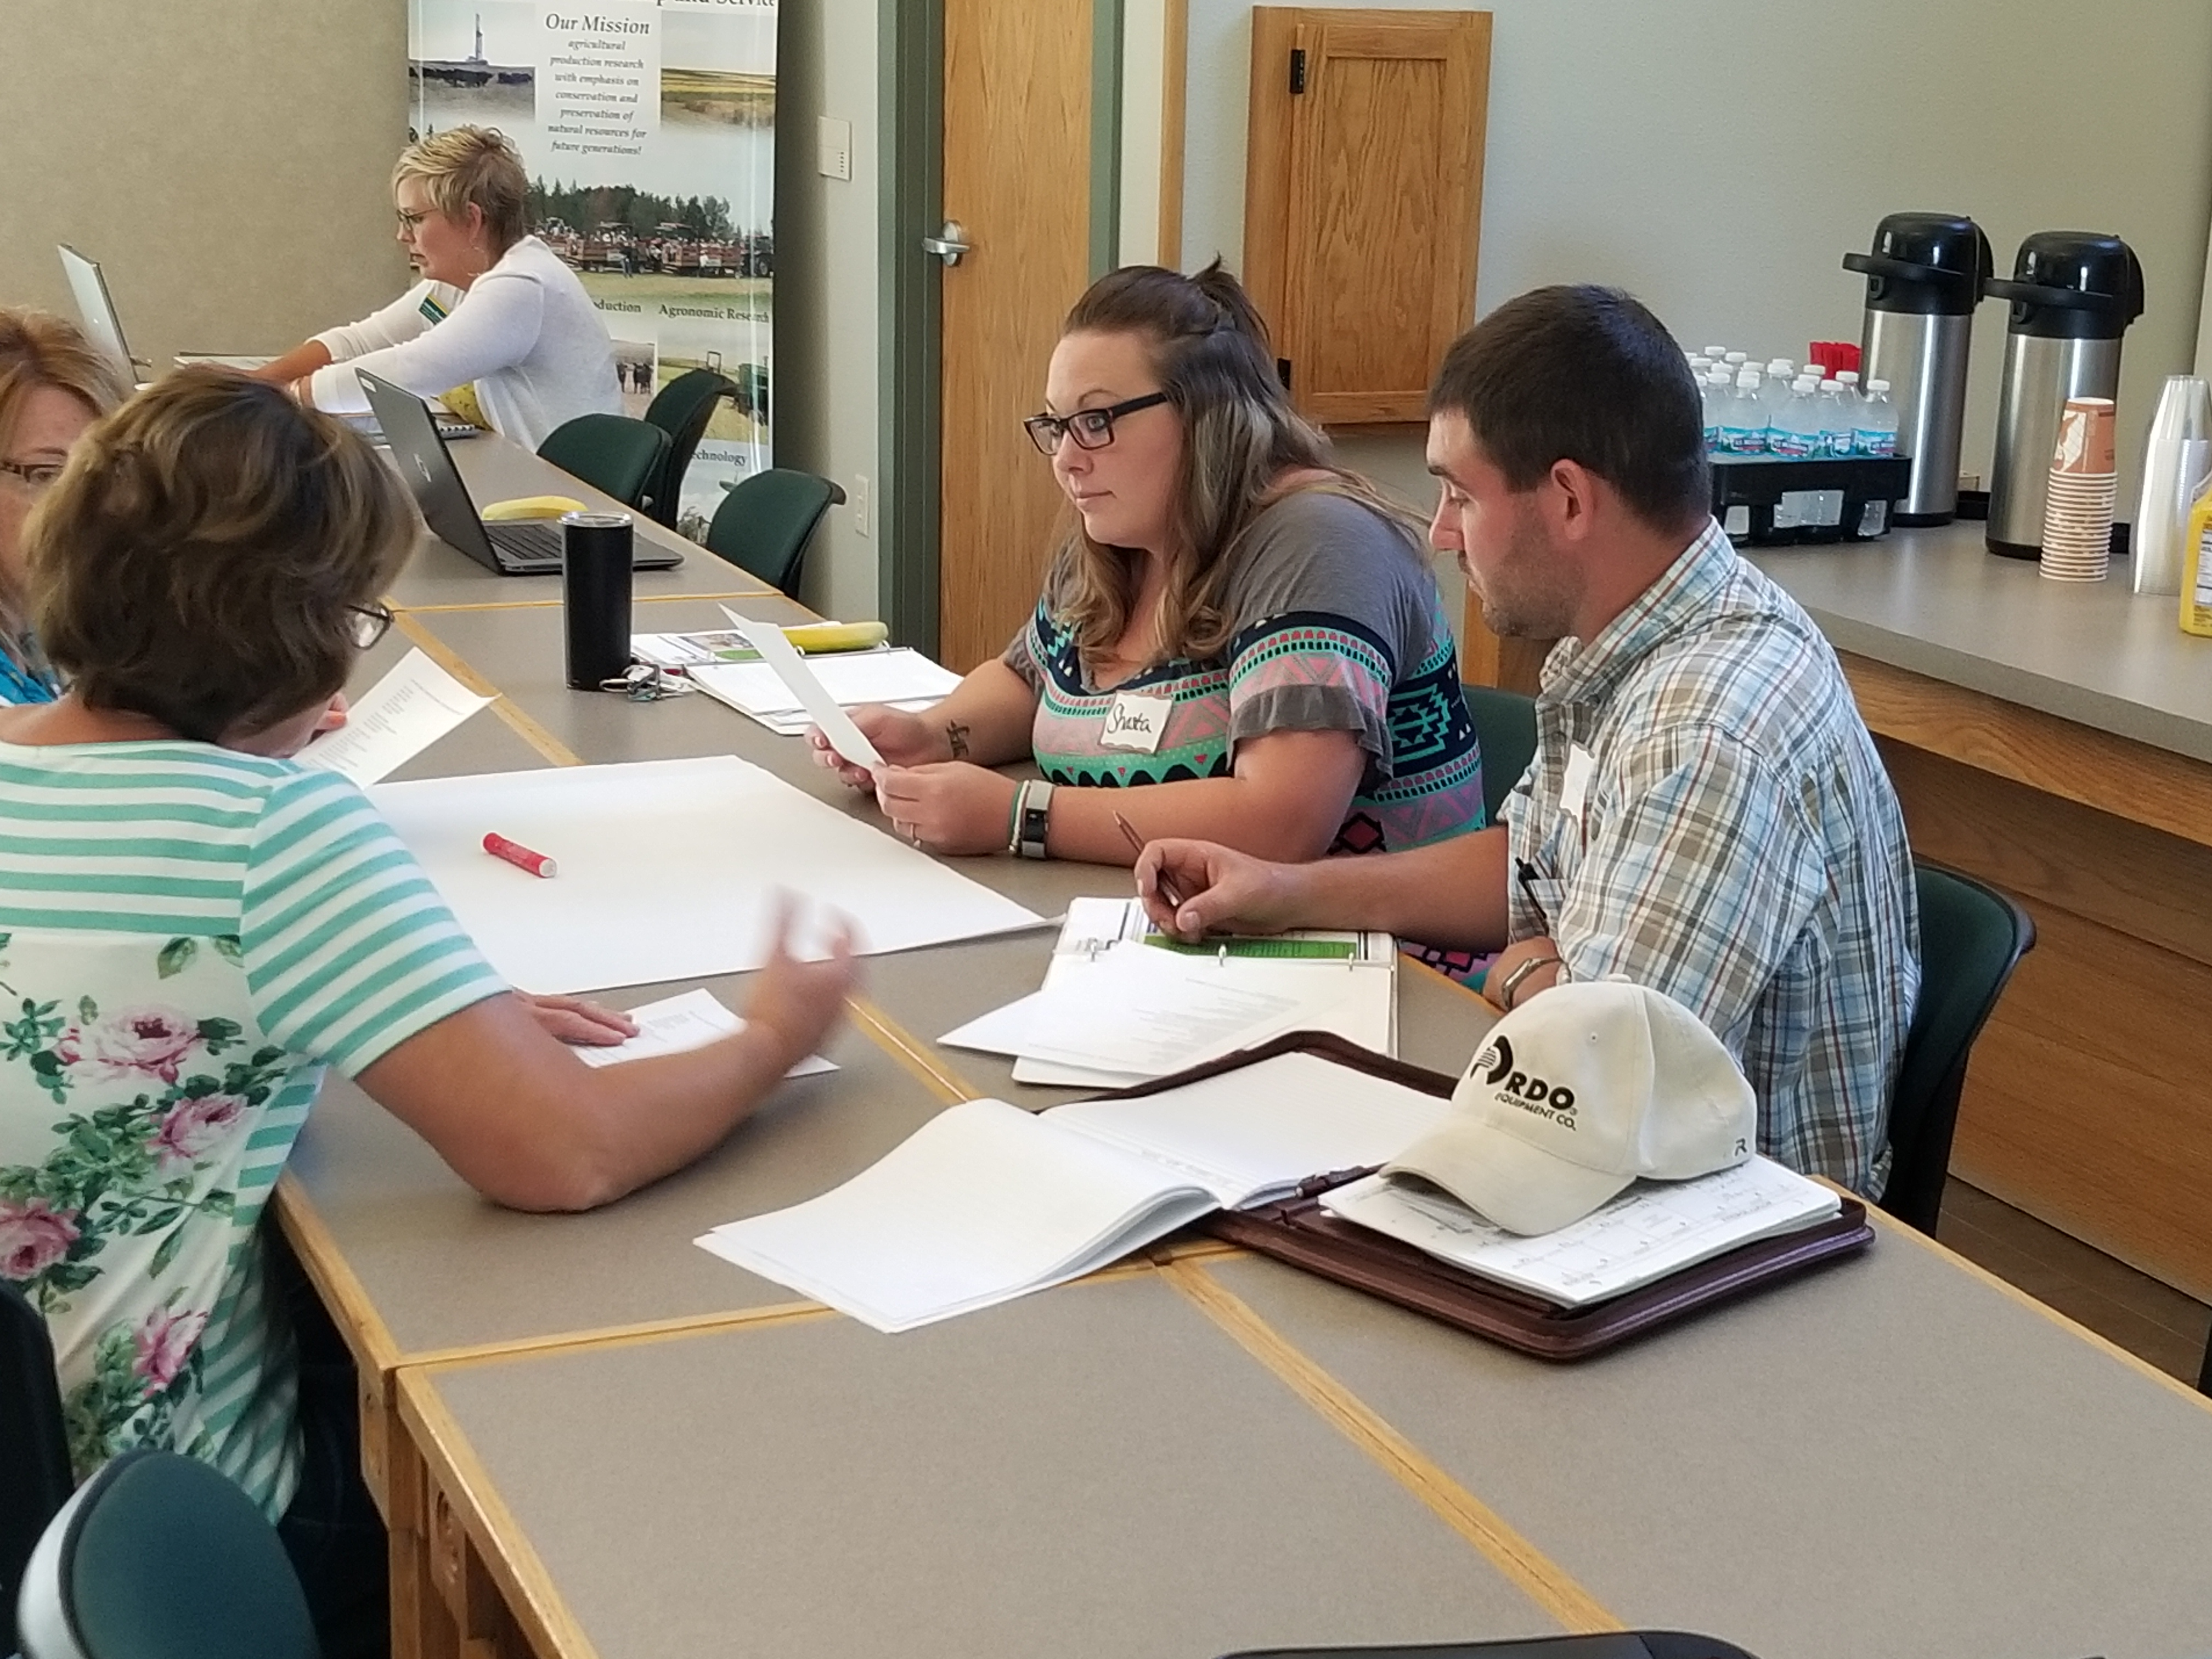 NDSU Extension's North Dakota Soil and Water Conservation Leadership Academy helps participants learn how to lead soil conservation, watershed and community-based projects aimed at protecting water quality for future generations. (NDSU photo)